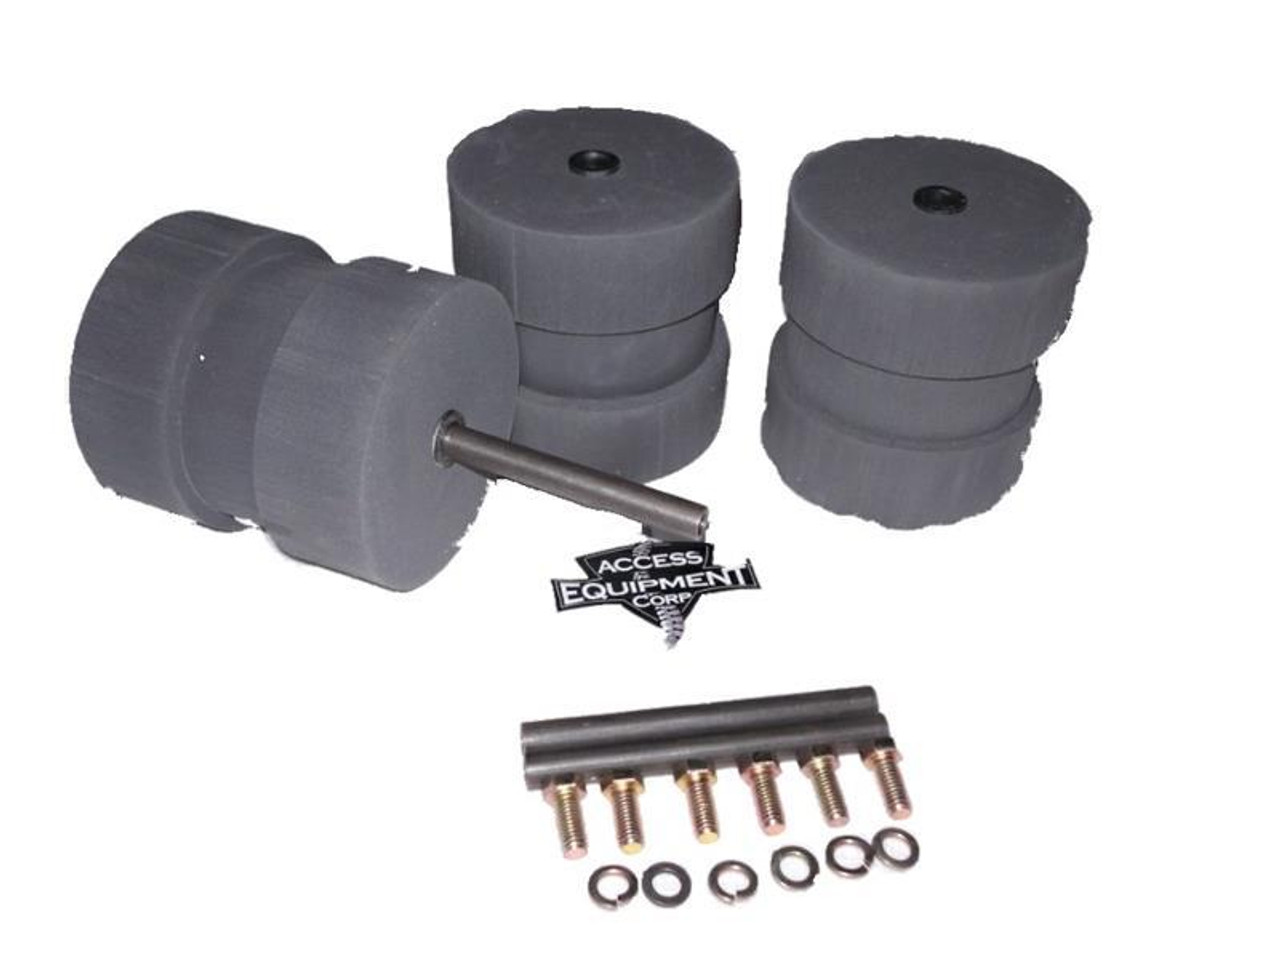 Replacement Ist Table Rollers